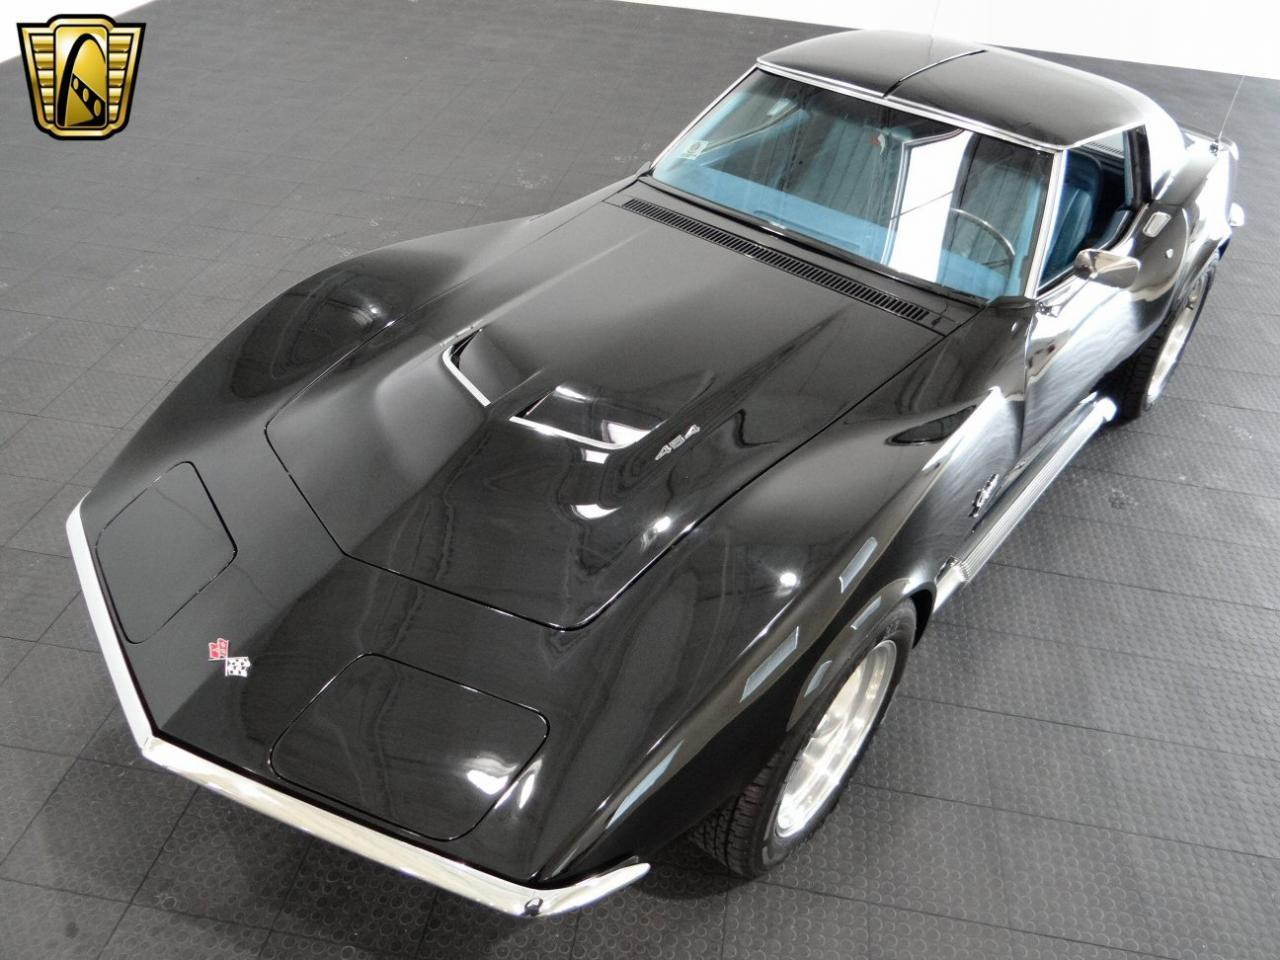 Large Picture of '71 Chevrolet Corvette located in Illinois Offered by Gateway Classic Cars - Chicago - KF3X